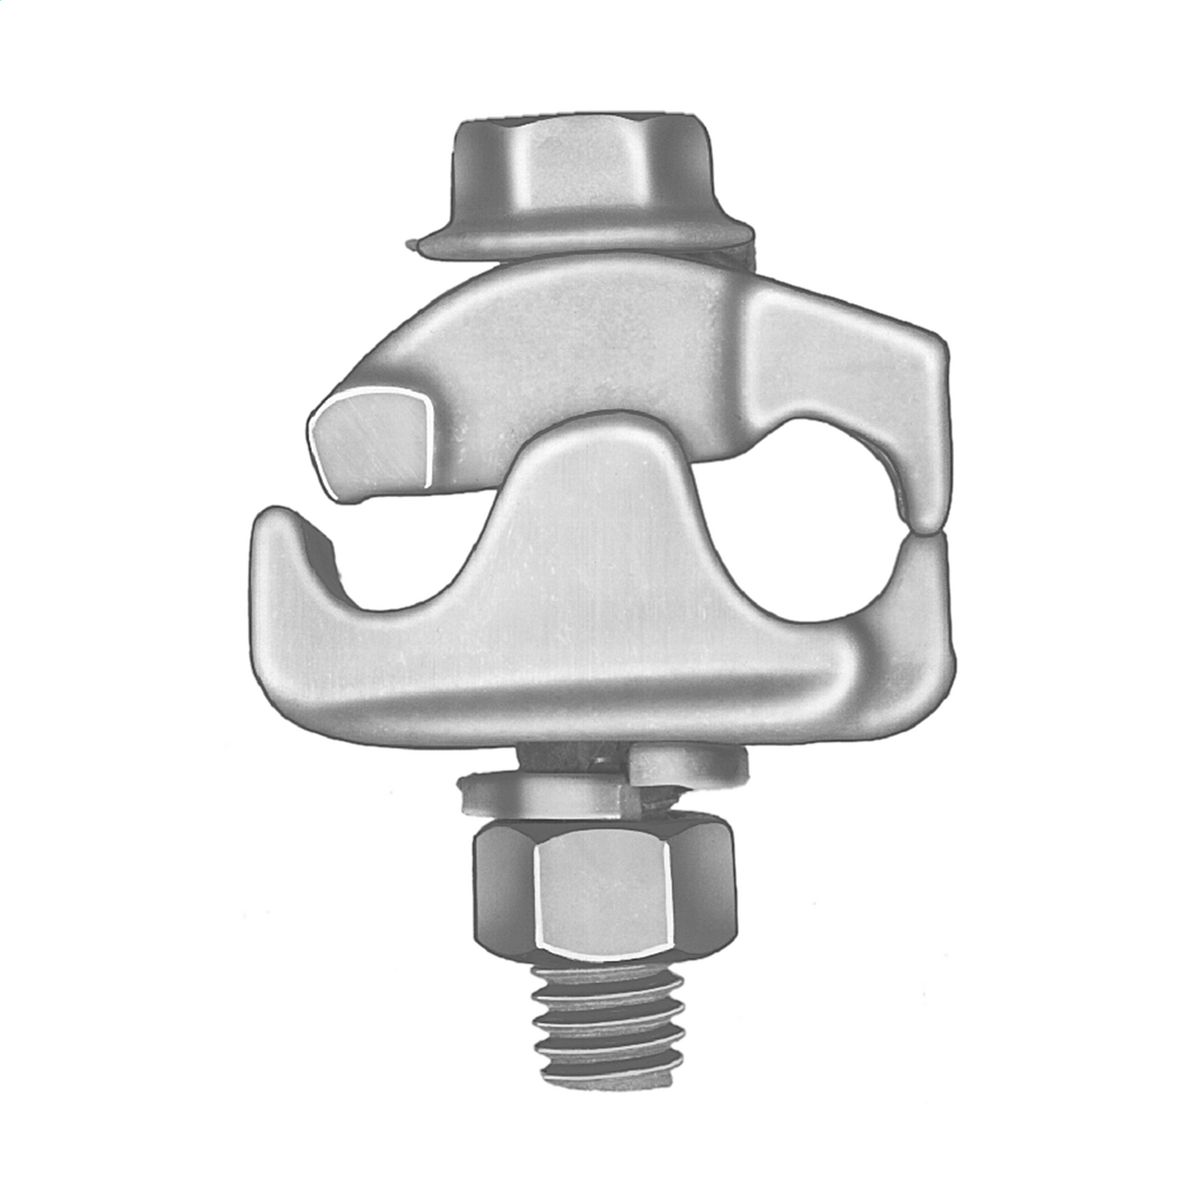 Connector parallel groove center bolt